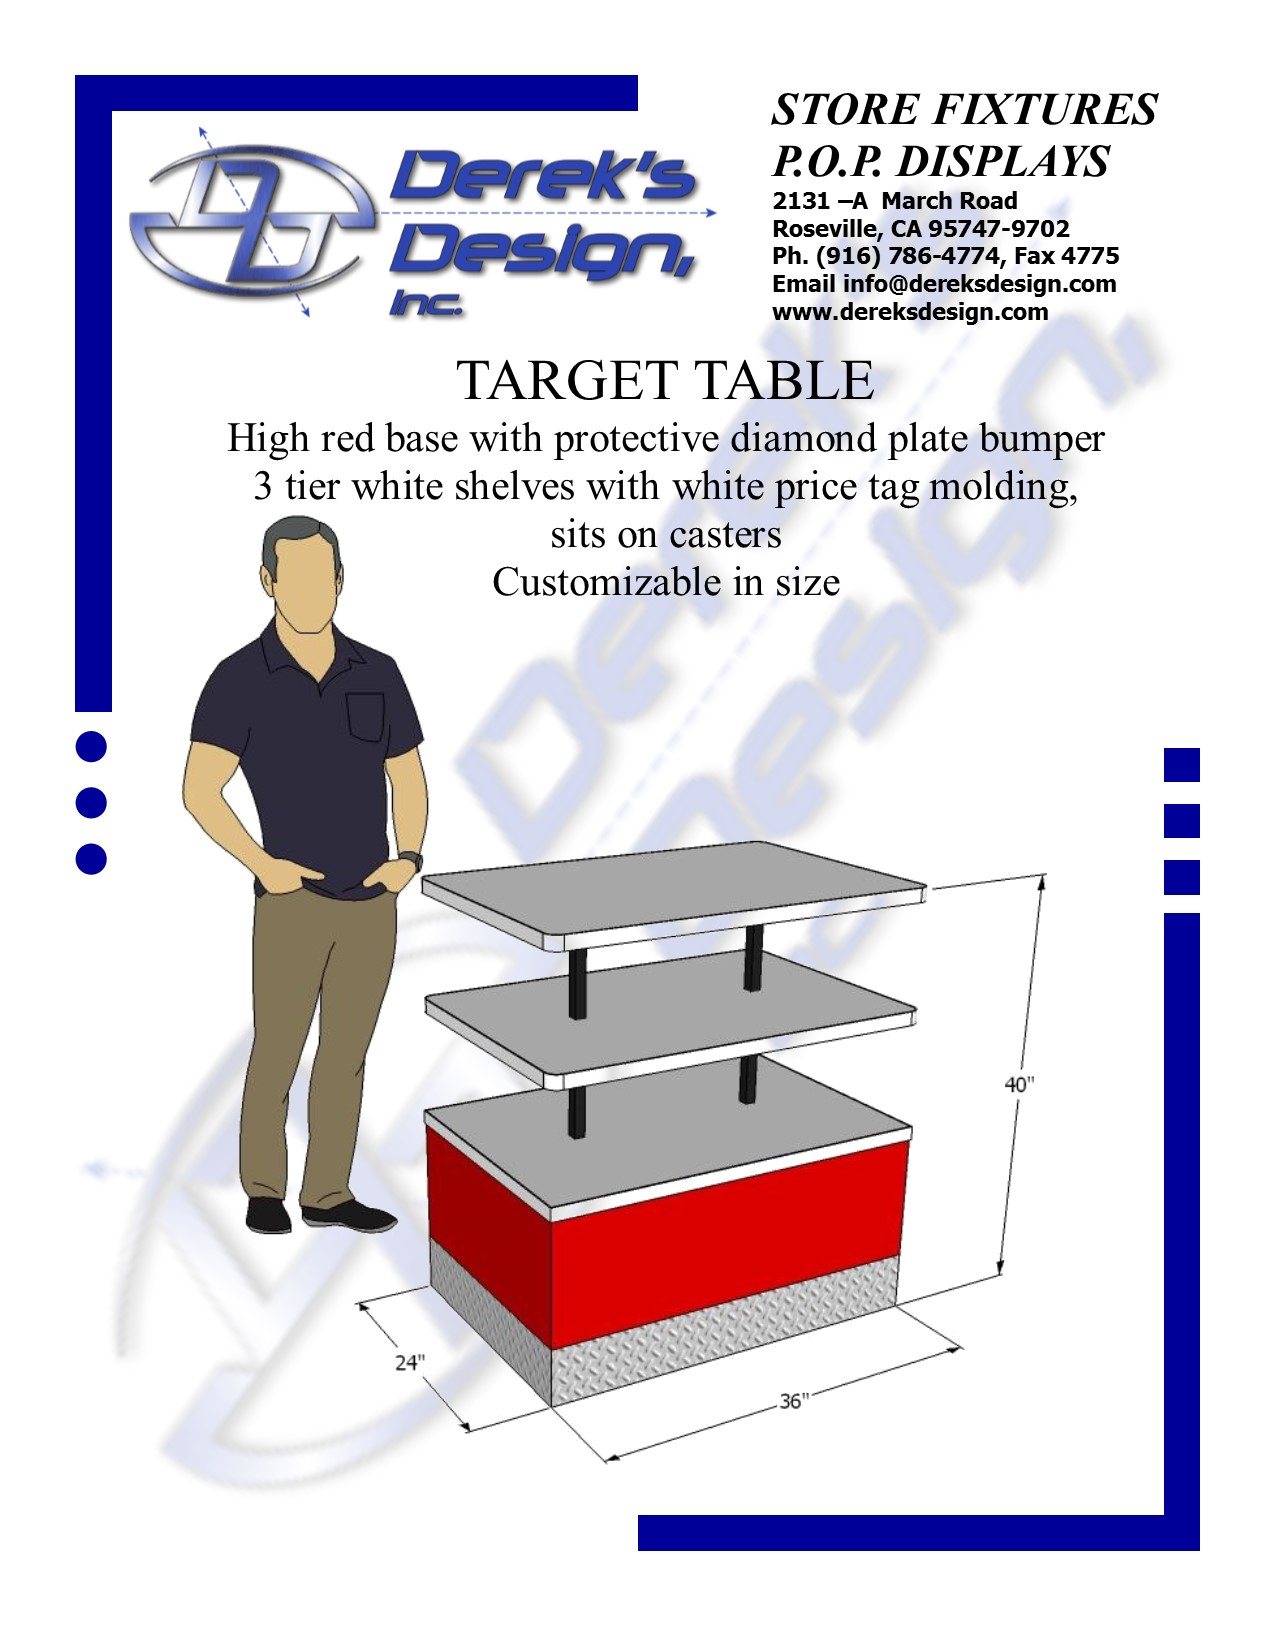 "<A HREF=""MAILTO:ORDERS@DEREKSDESIGN.COM?SUBJECT=Target%Table&BODY=http://www.dereksdesign.com/gallery/tables-shop-a-rounds/target-table/"">CLICK HERE FOR INQUIRY </A>"